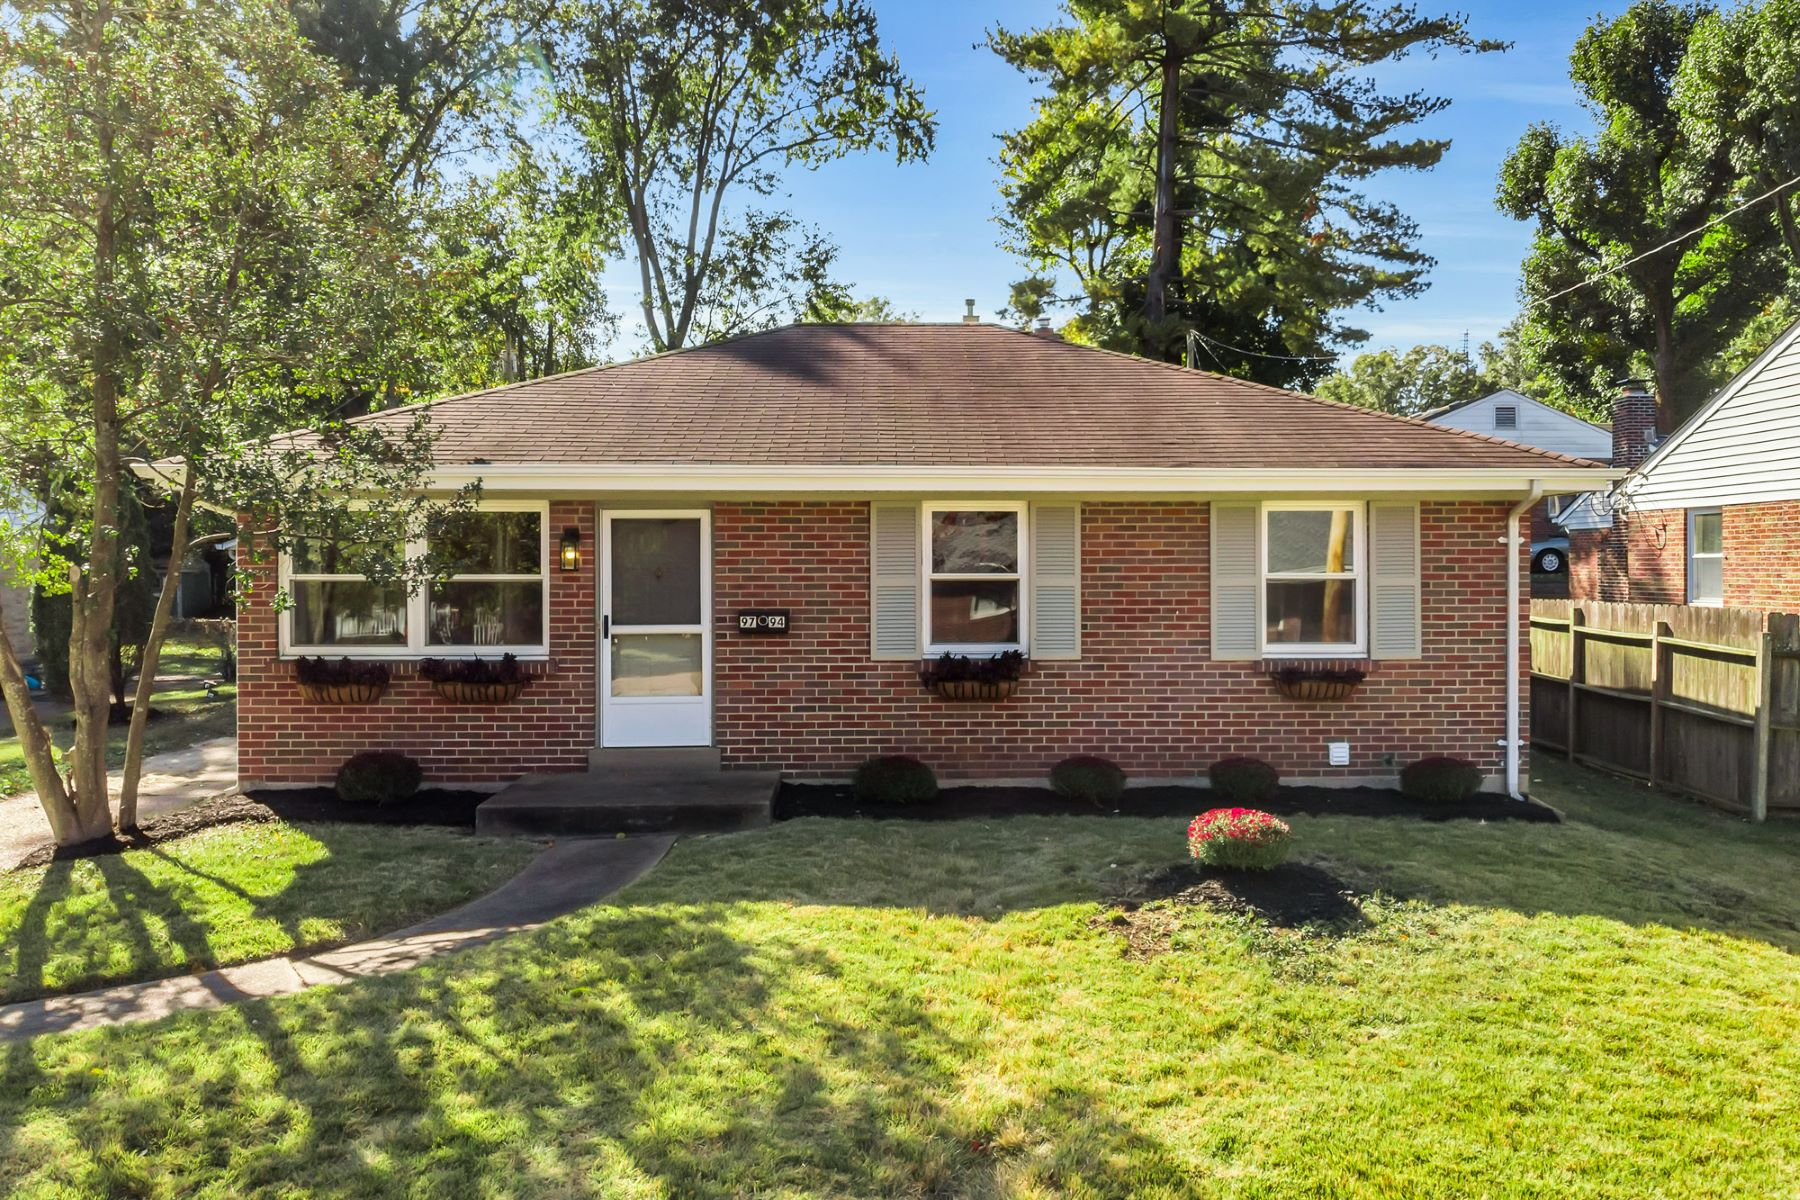 Single Family Homes for Sale at Bright and Modern Bungalow in Rock Hill 9794 Sherrell Court Rock Hill, Missouri 63119 United States